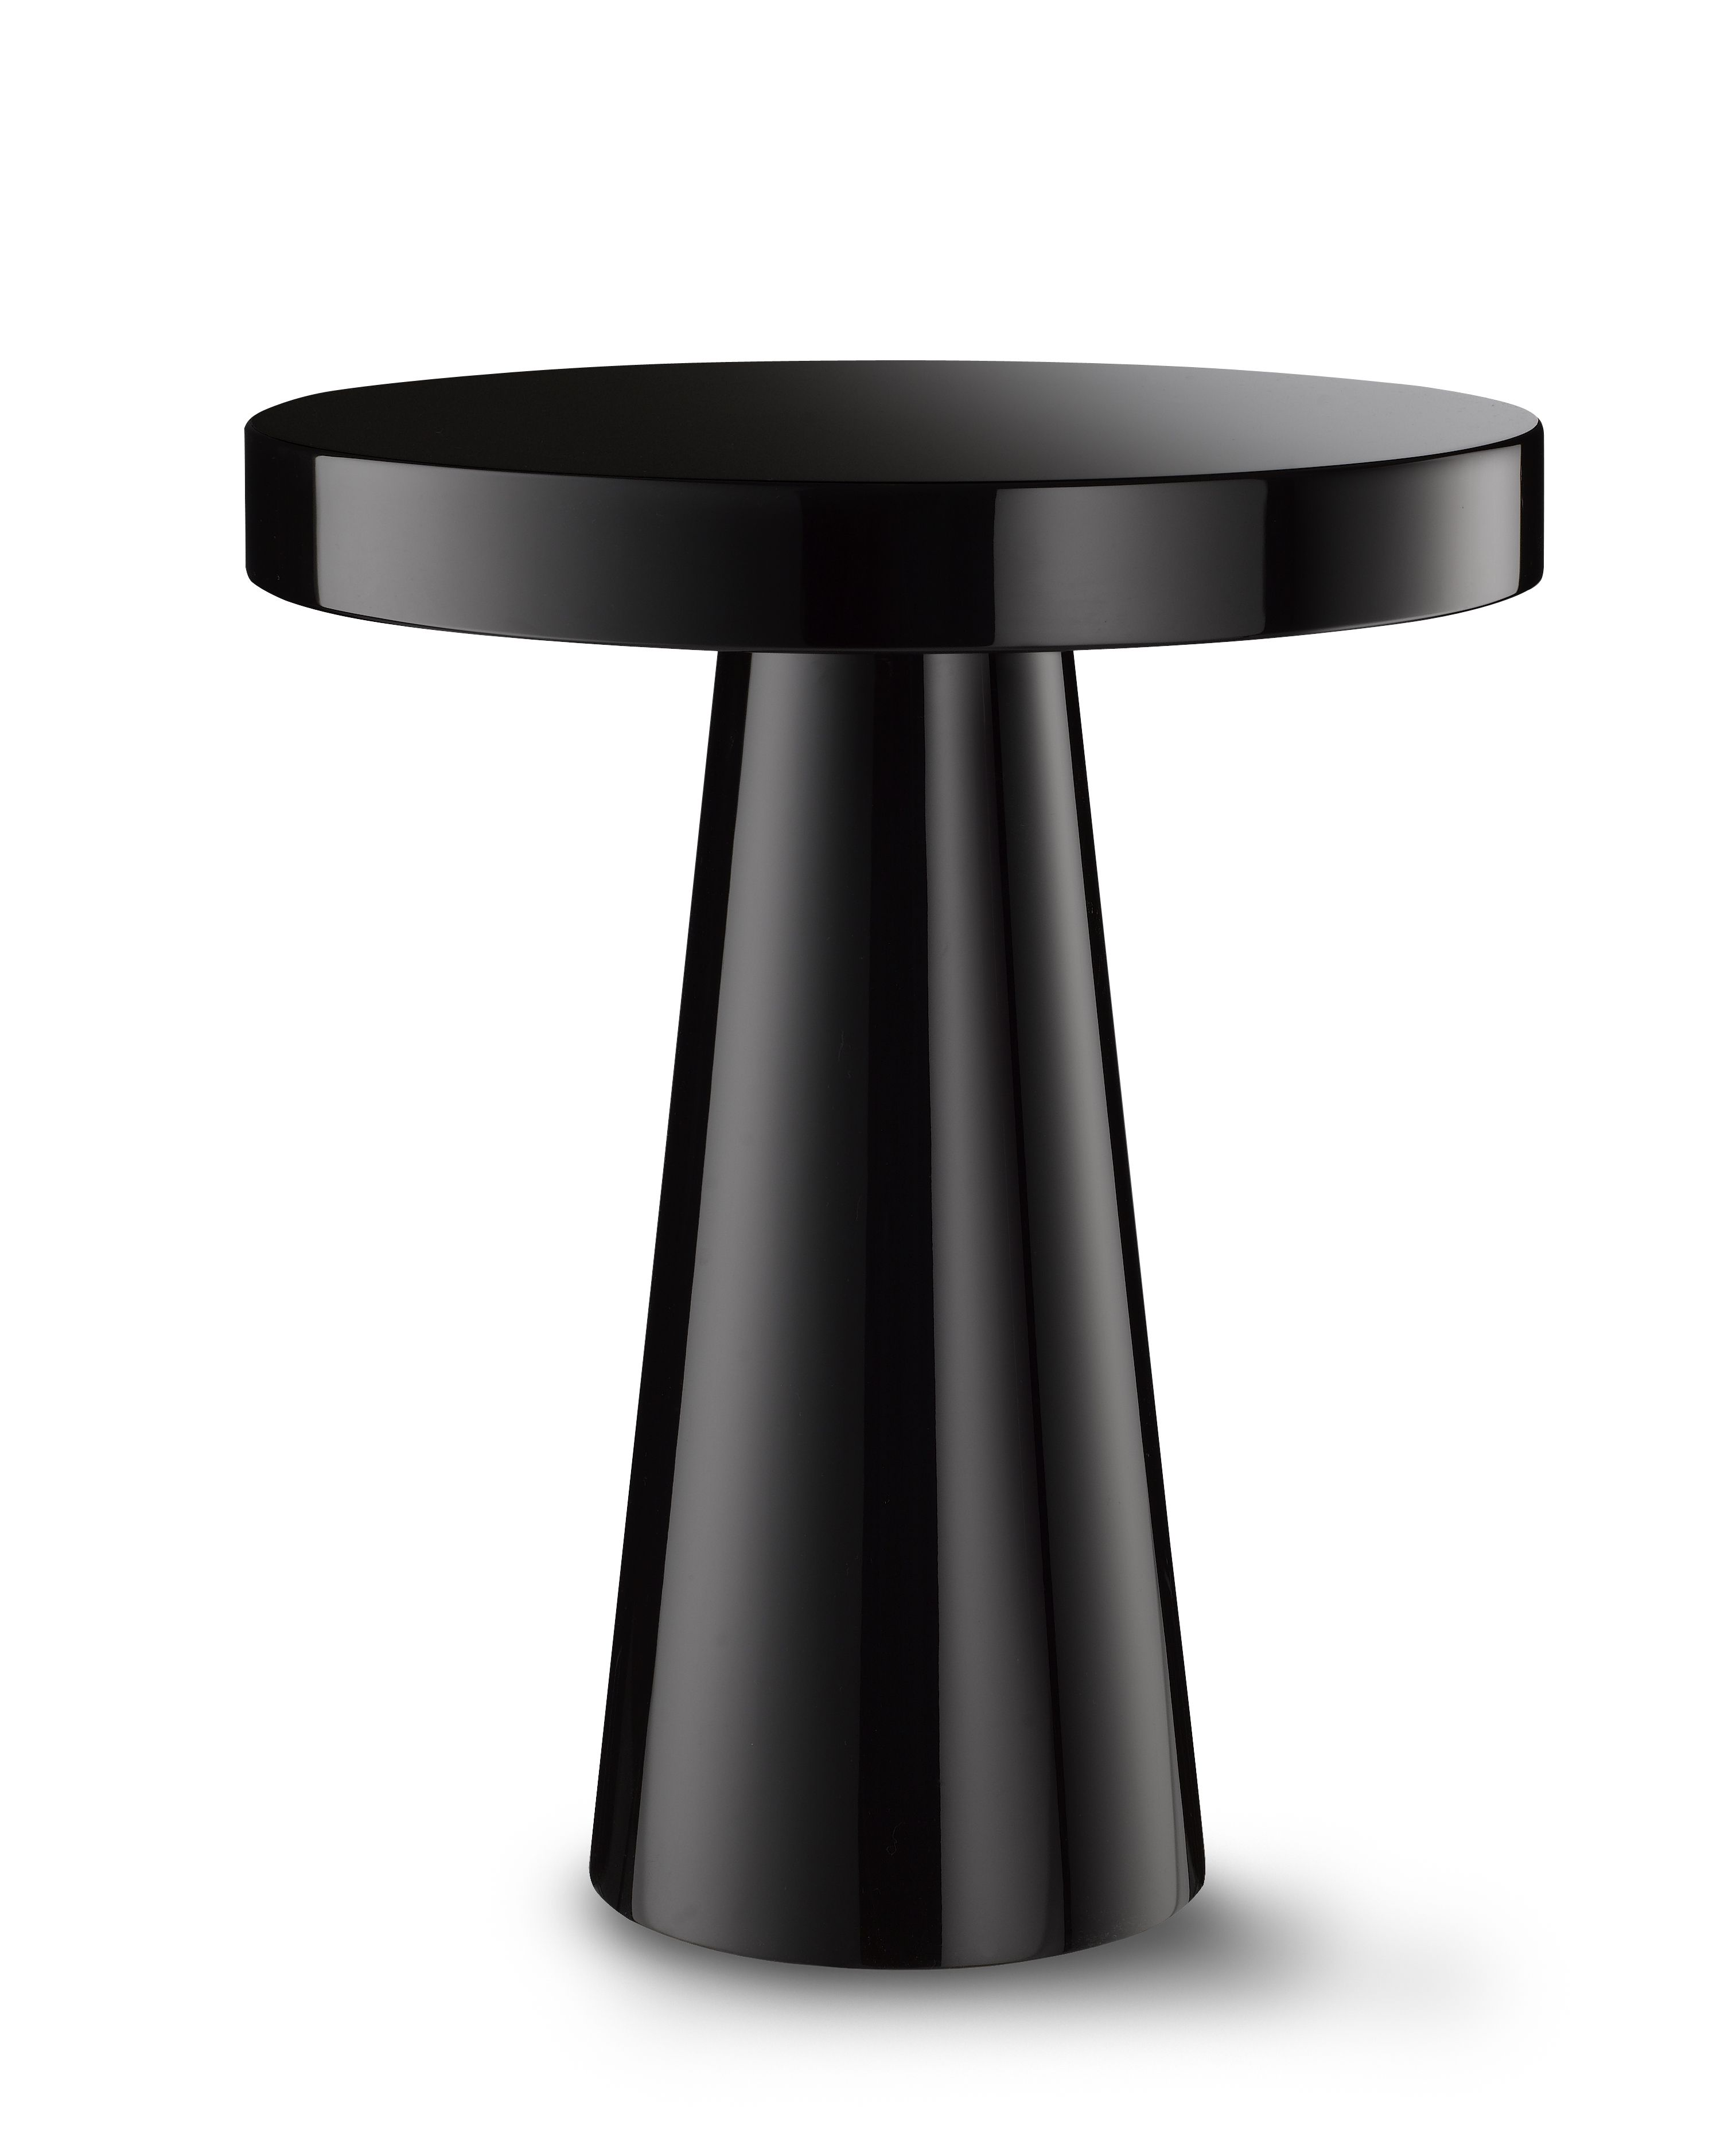 DAVIDSON London The Mushroom Table in High Gloss Black Lacquer